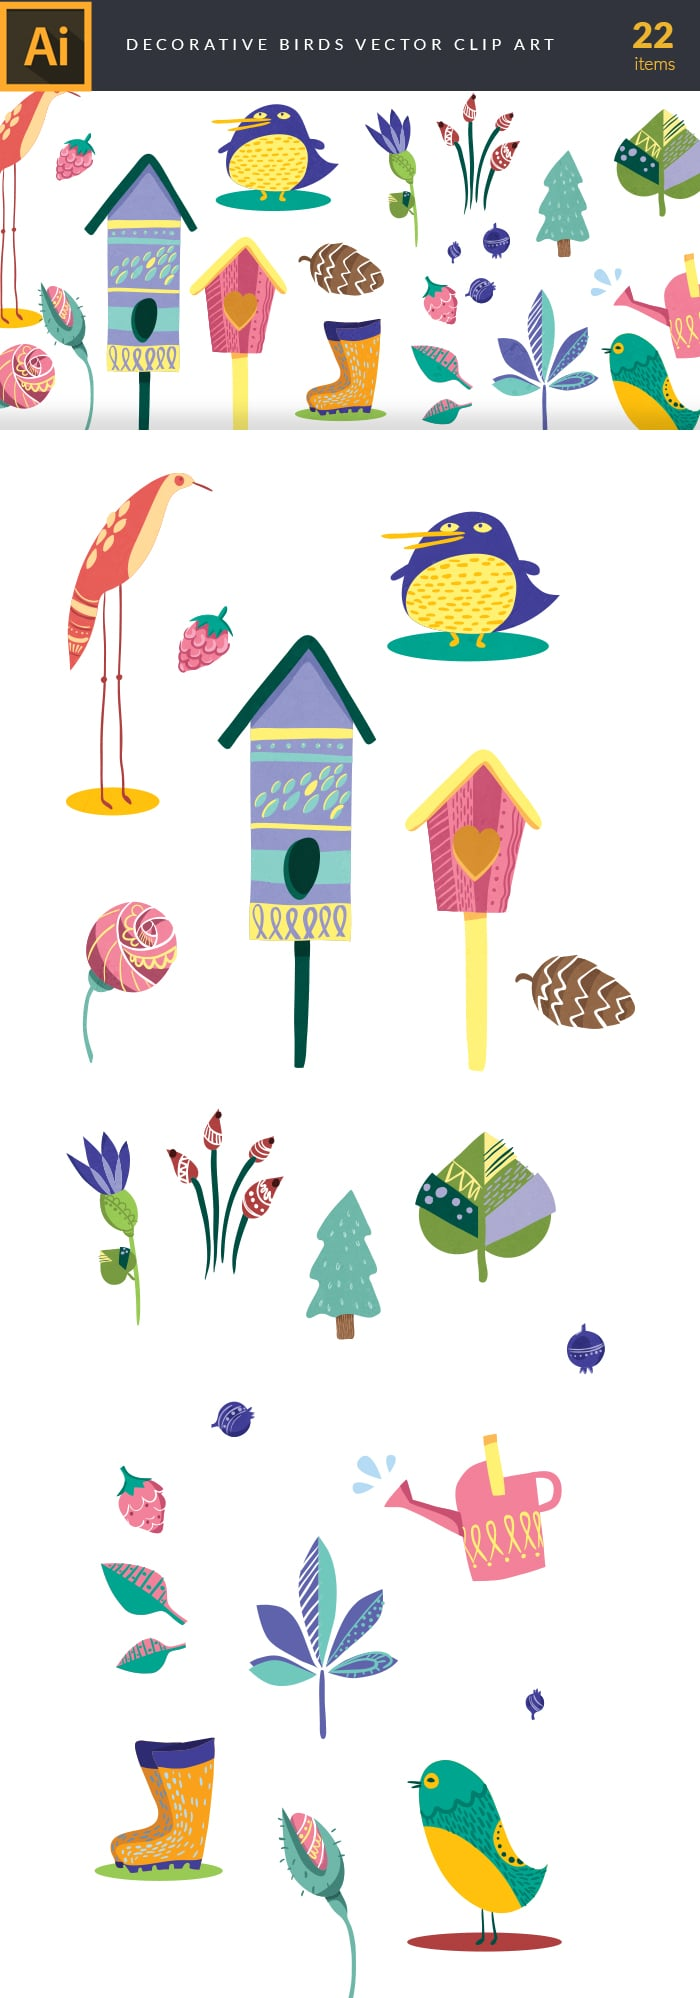 400+ Amazing Cartoon Vector Clip Art with 27 different sets - $10! - decorative birds large